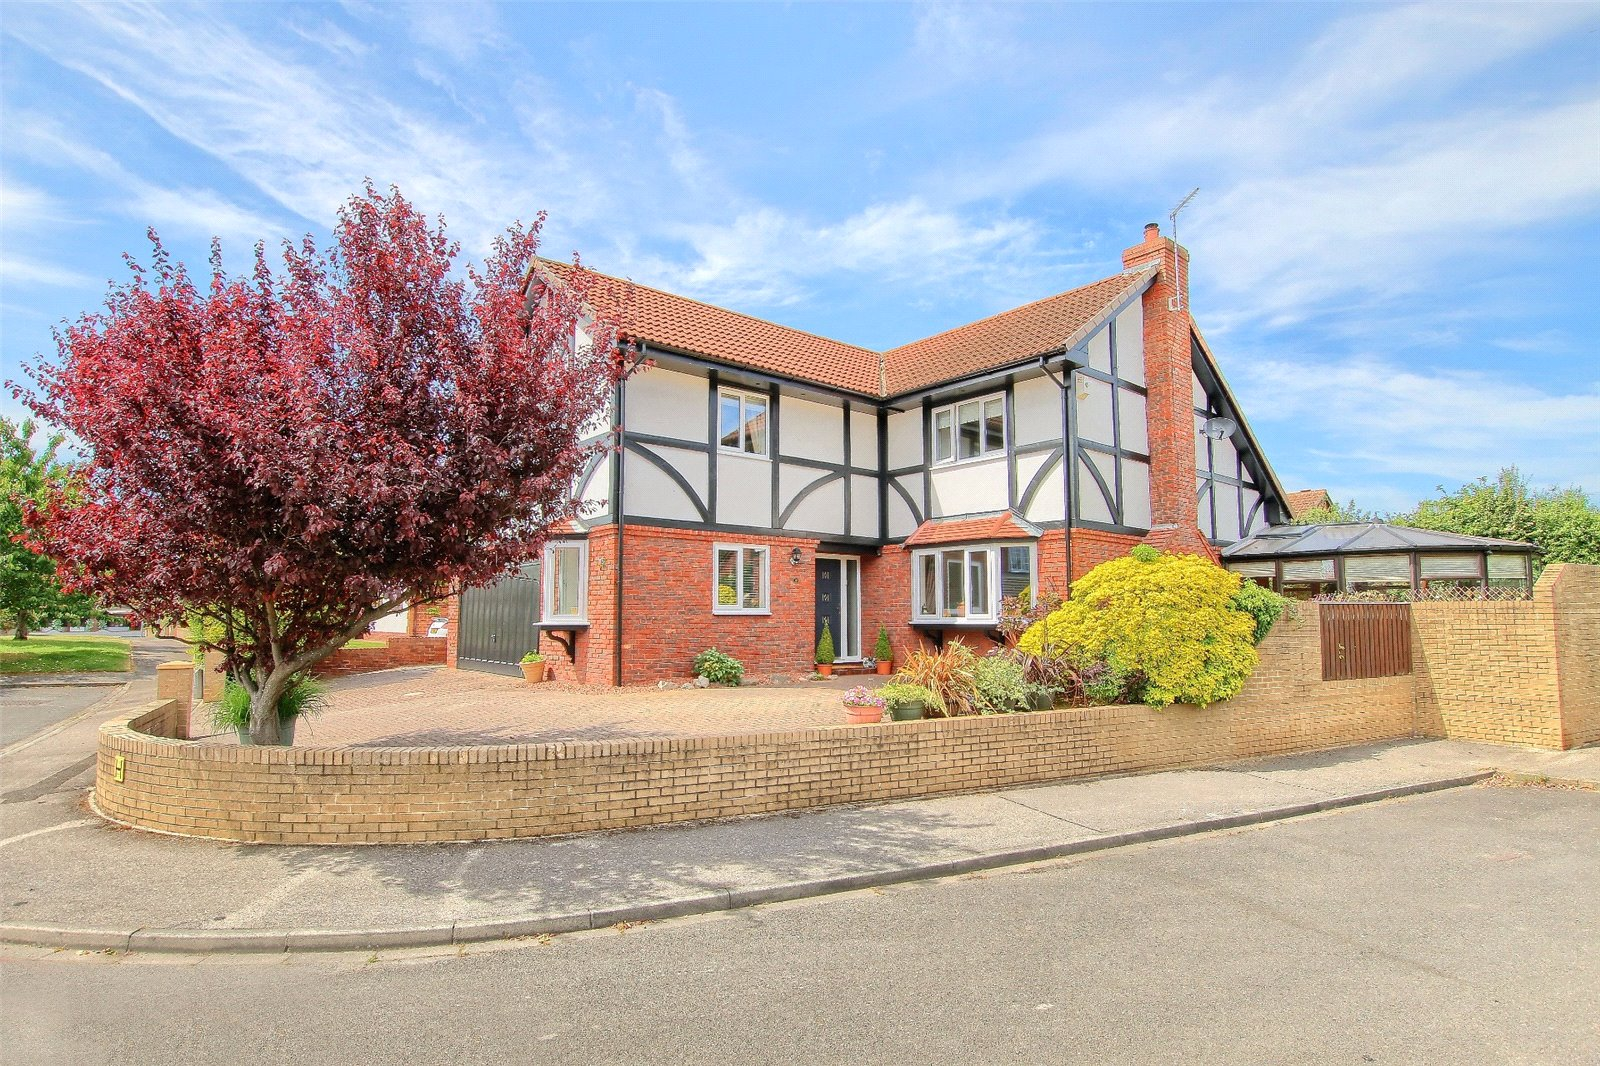 5 bed house for sale in Chalfield Close, Ingleby Barwick - Property Image 1